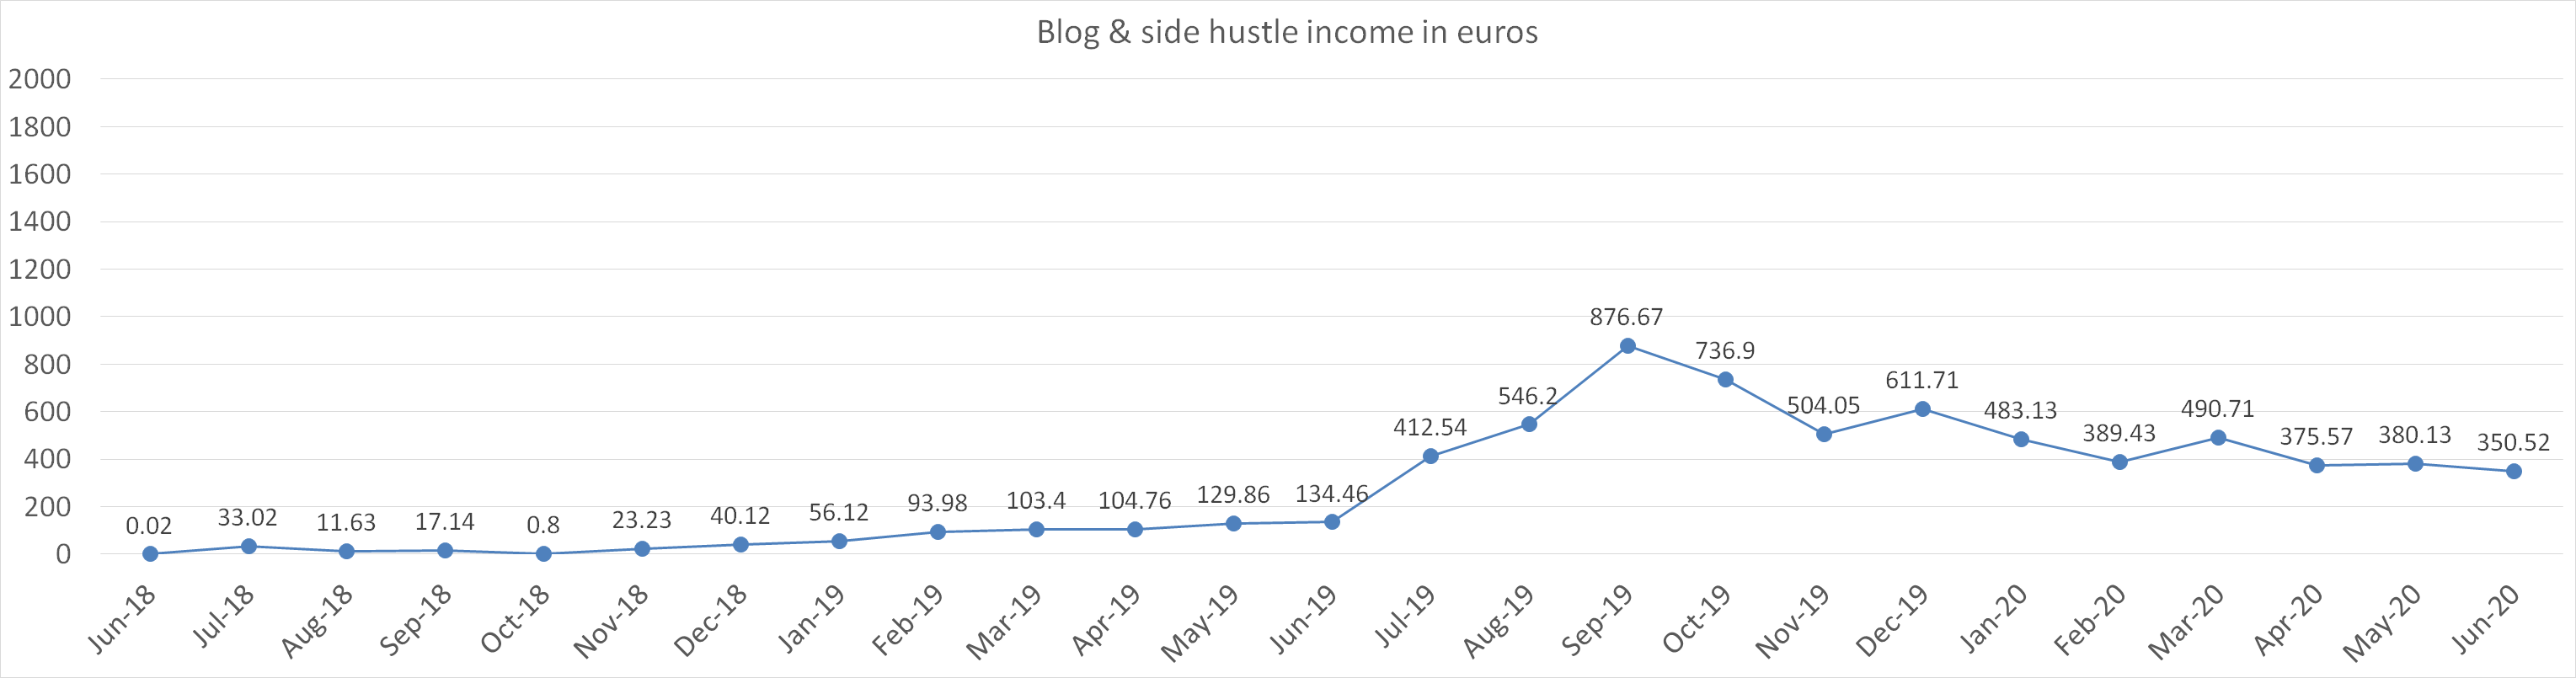 Blog and side hustle income in euros june 2020